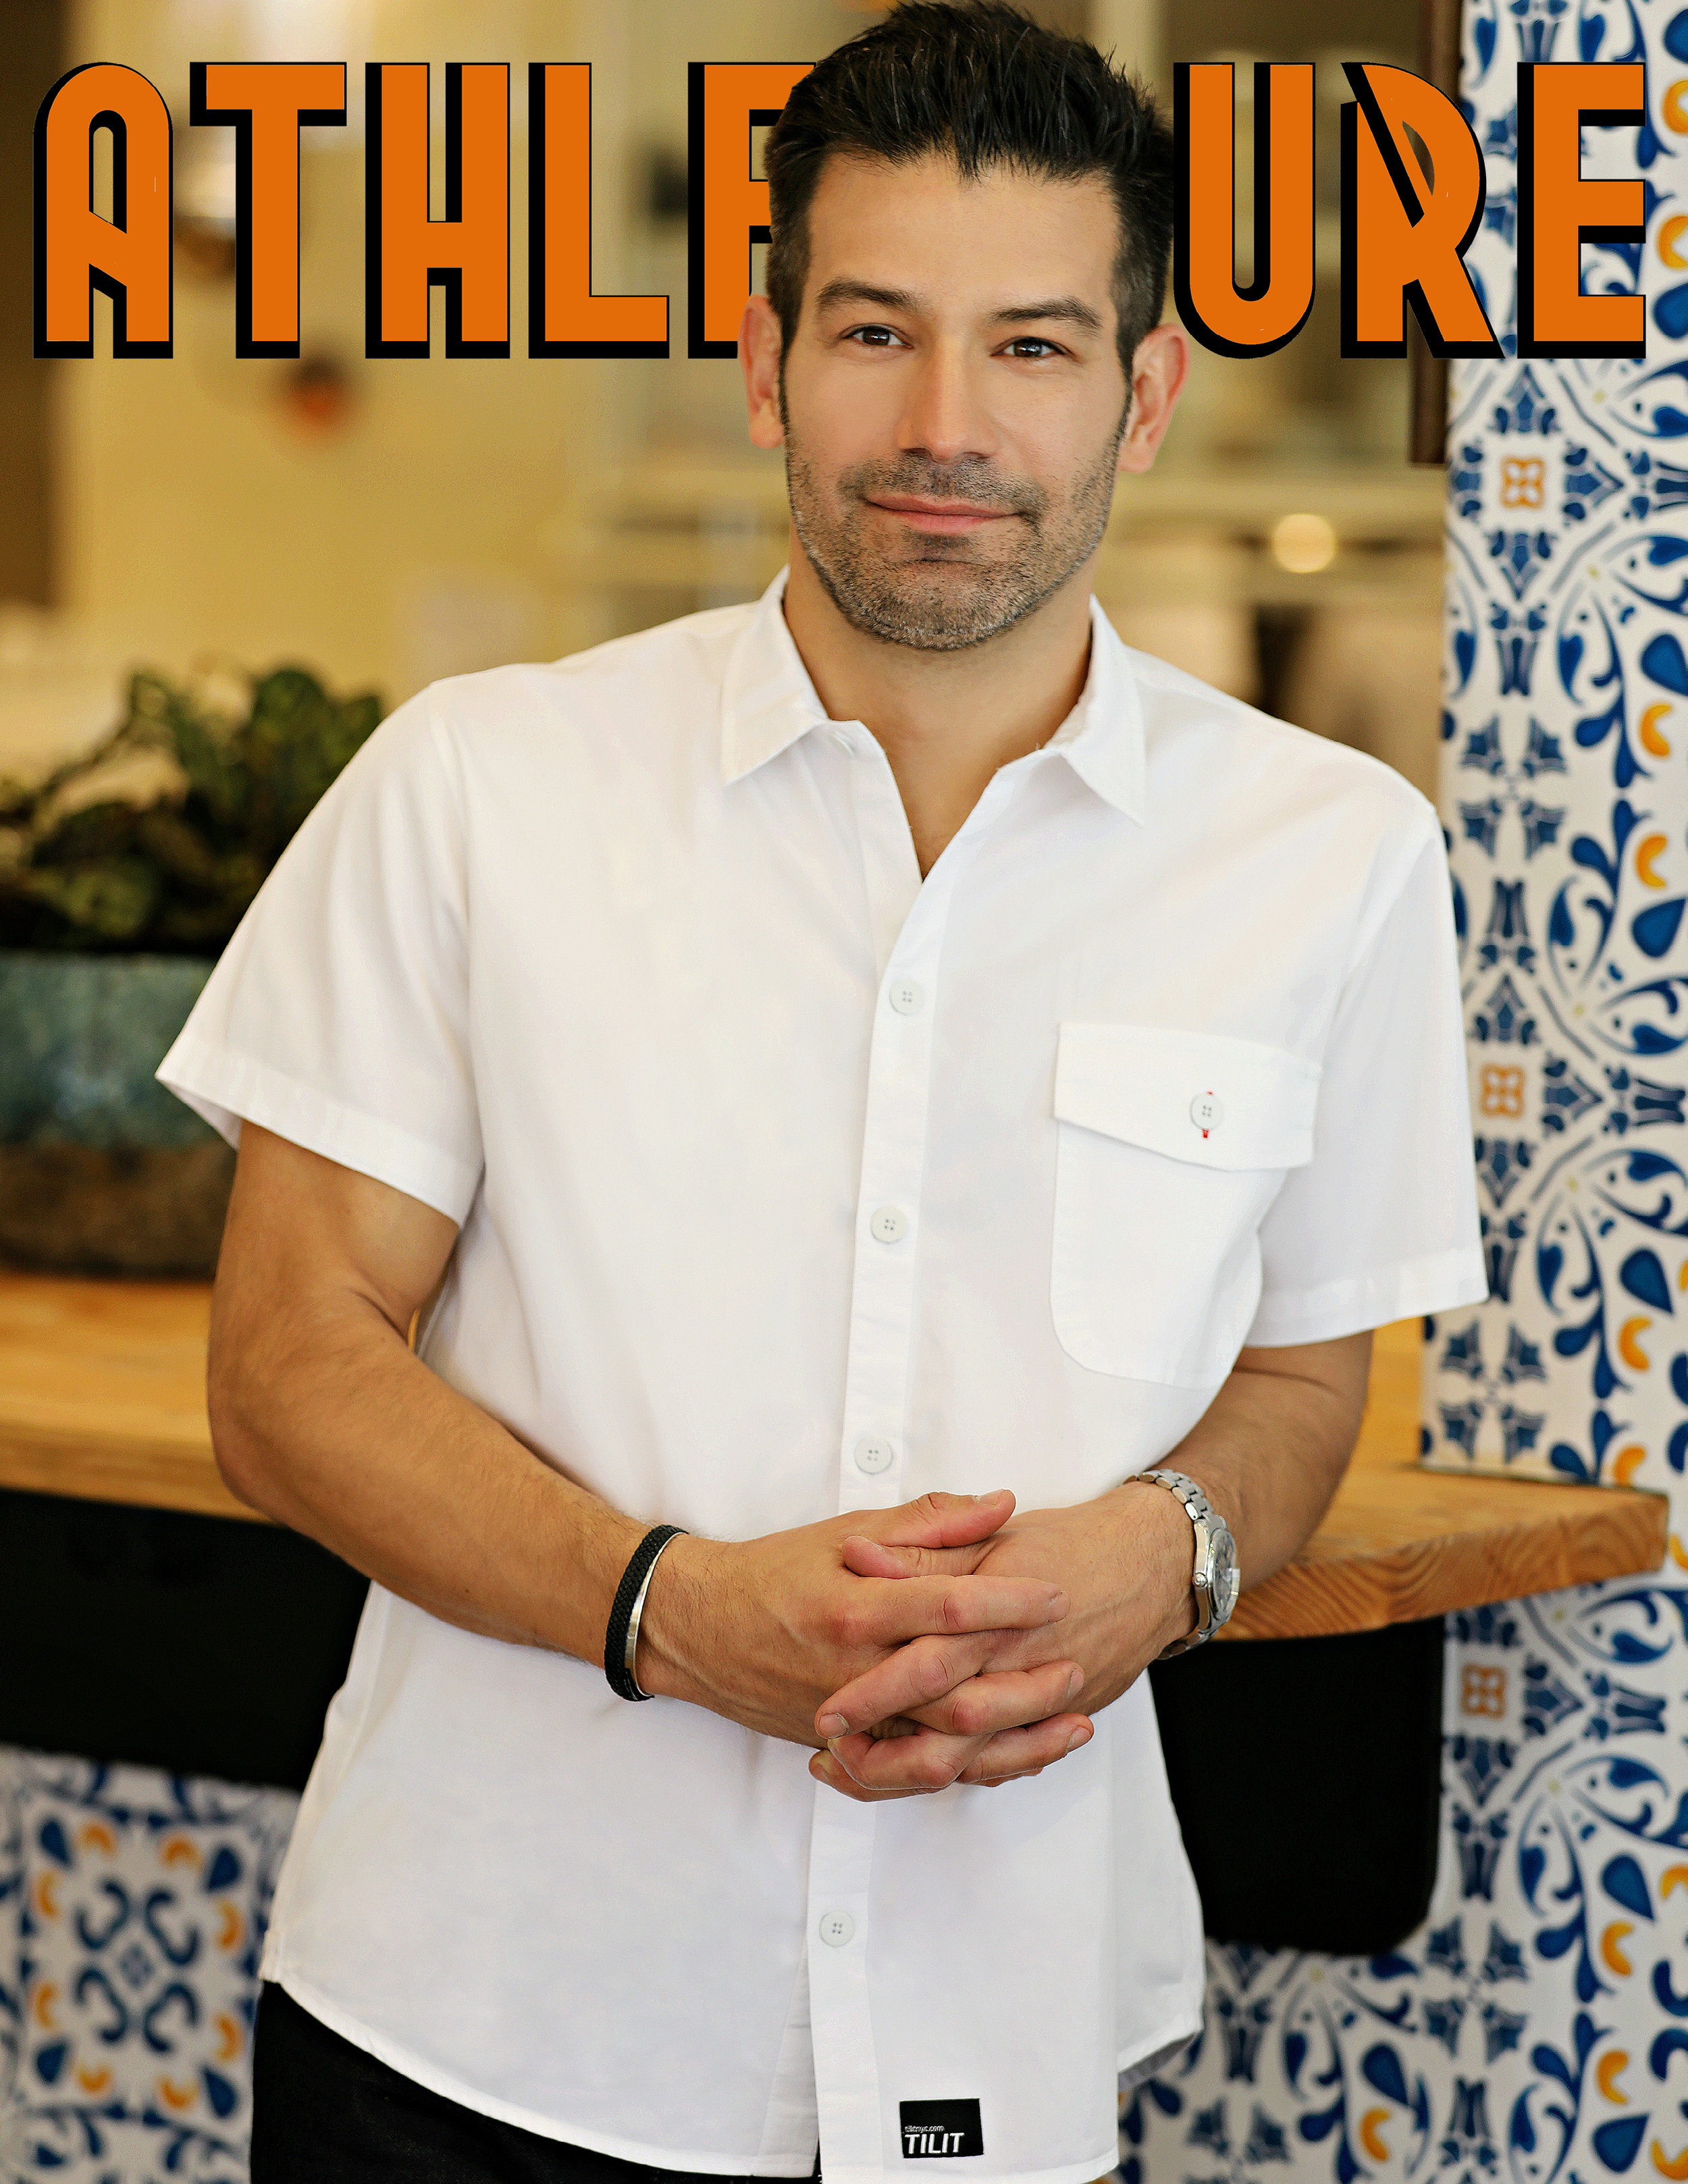 AM JUN REFINED RUSTICITY WITH CHEF GEORGE MENDES FRONT COVER.jpg